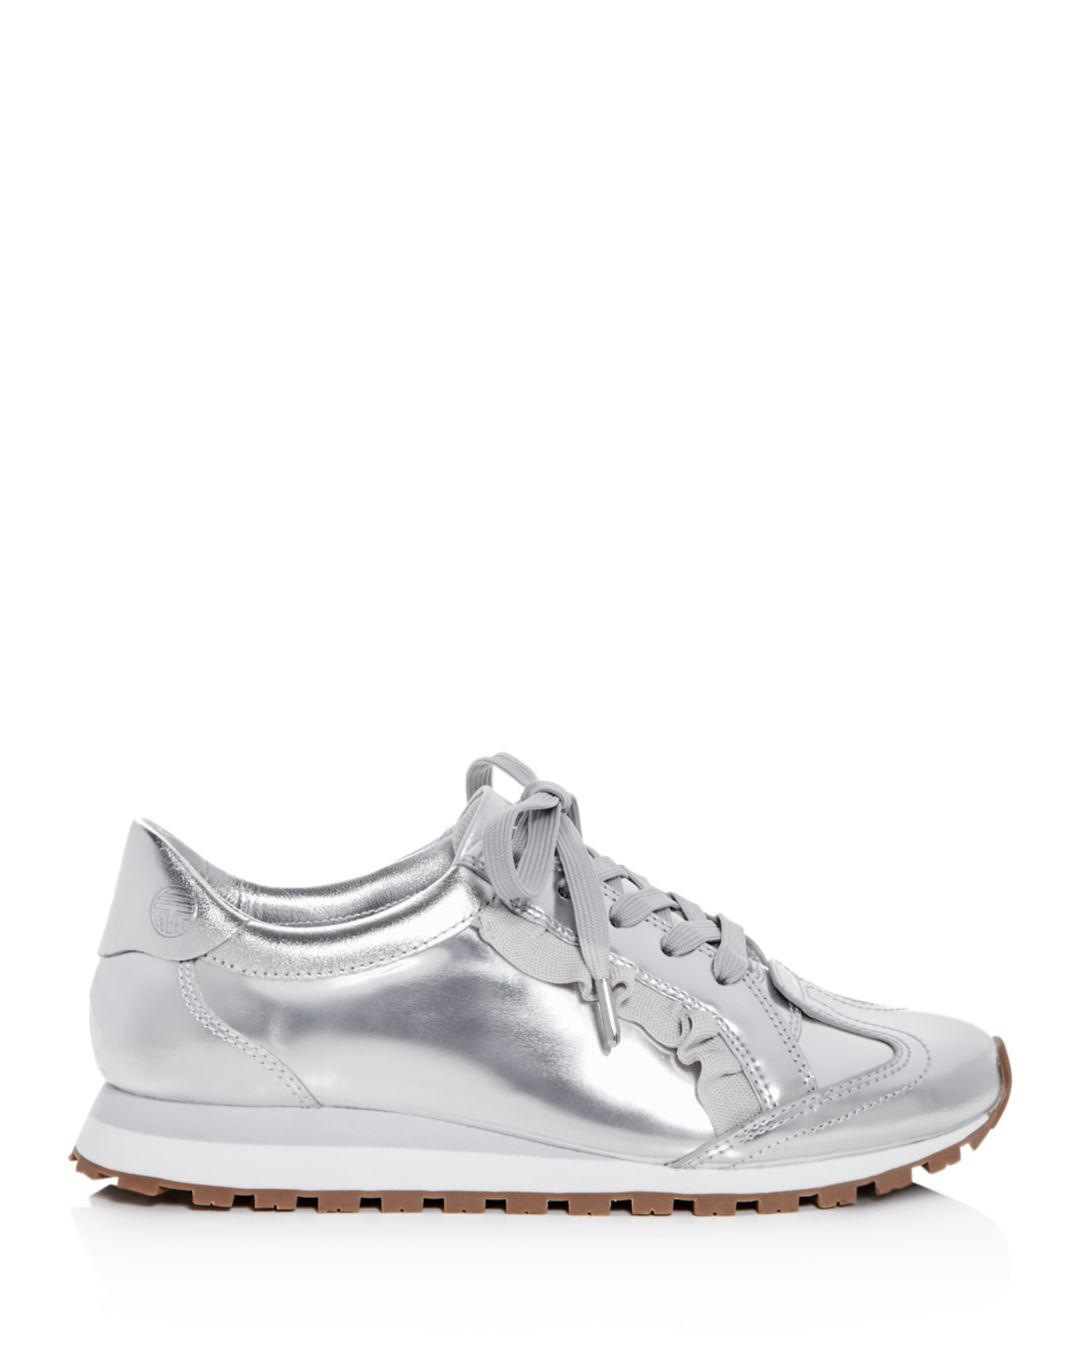 138aa533941e26 Lyst - Tory Sport Women s Ruffle Trainer Leather Lace Up Sneakers in  Metallic - Save 40%